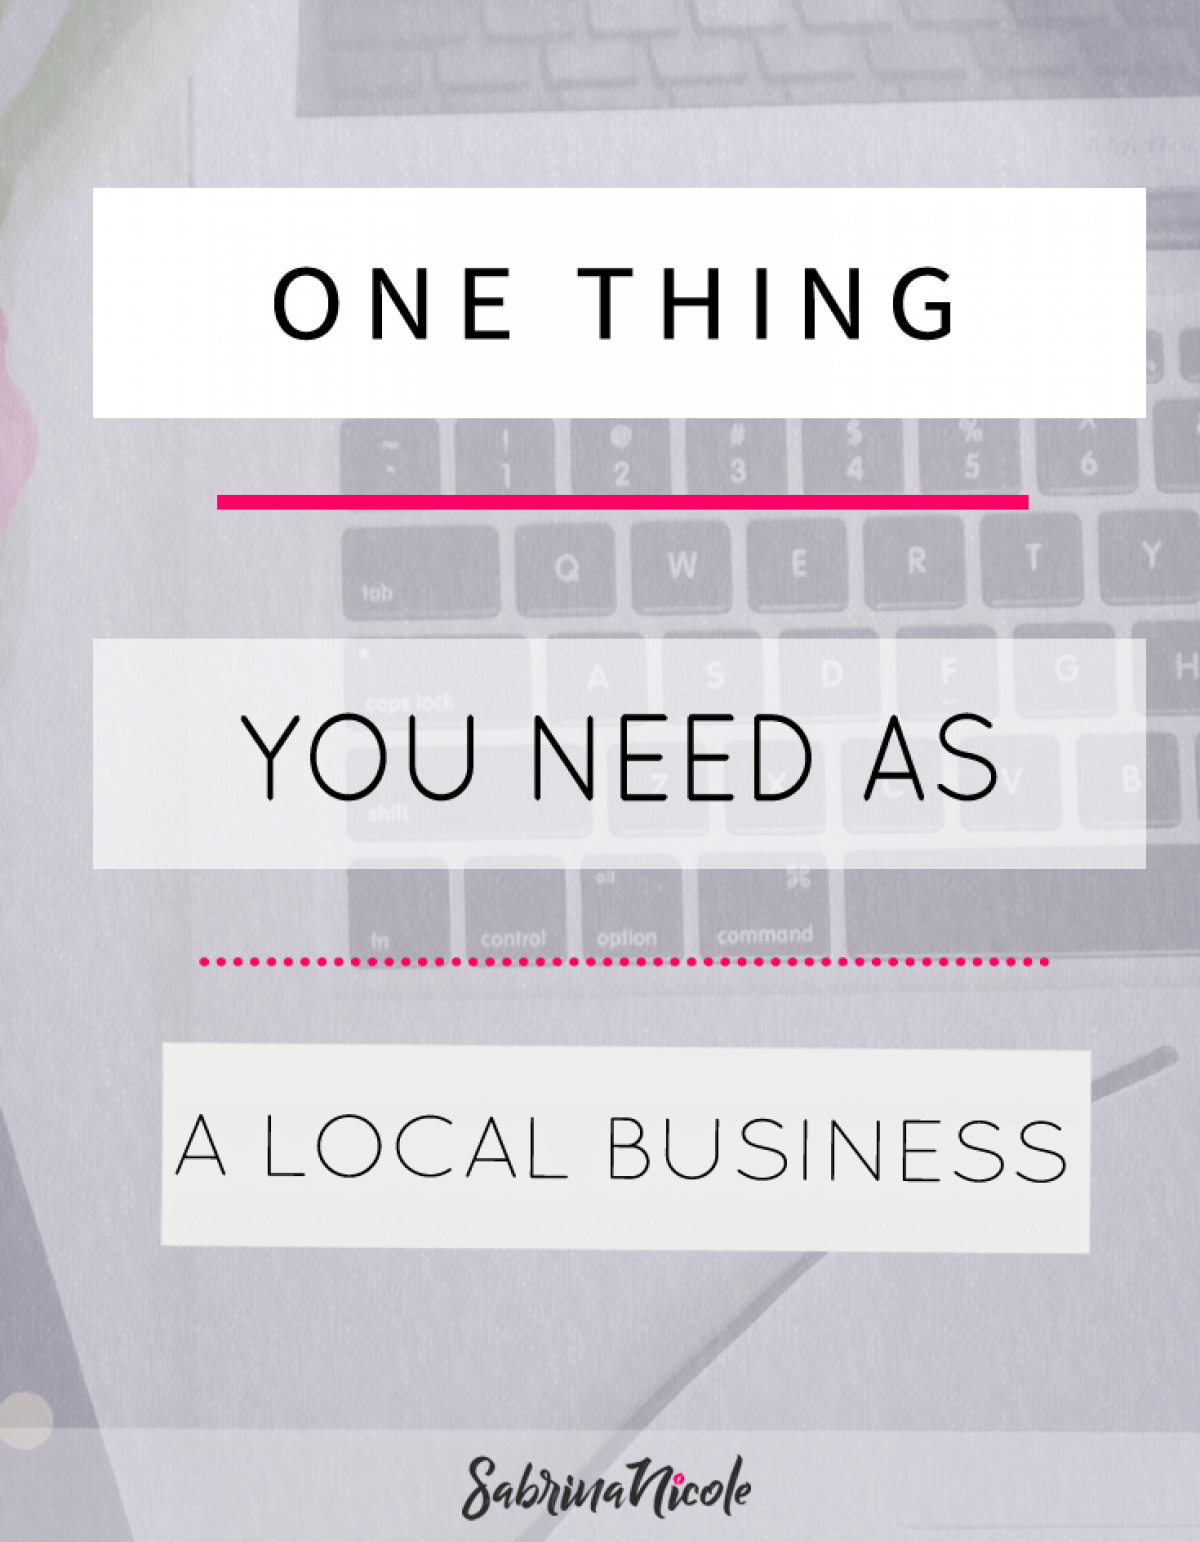 The One Thing You Need as Local Business